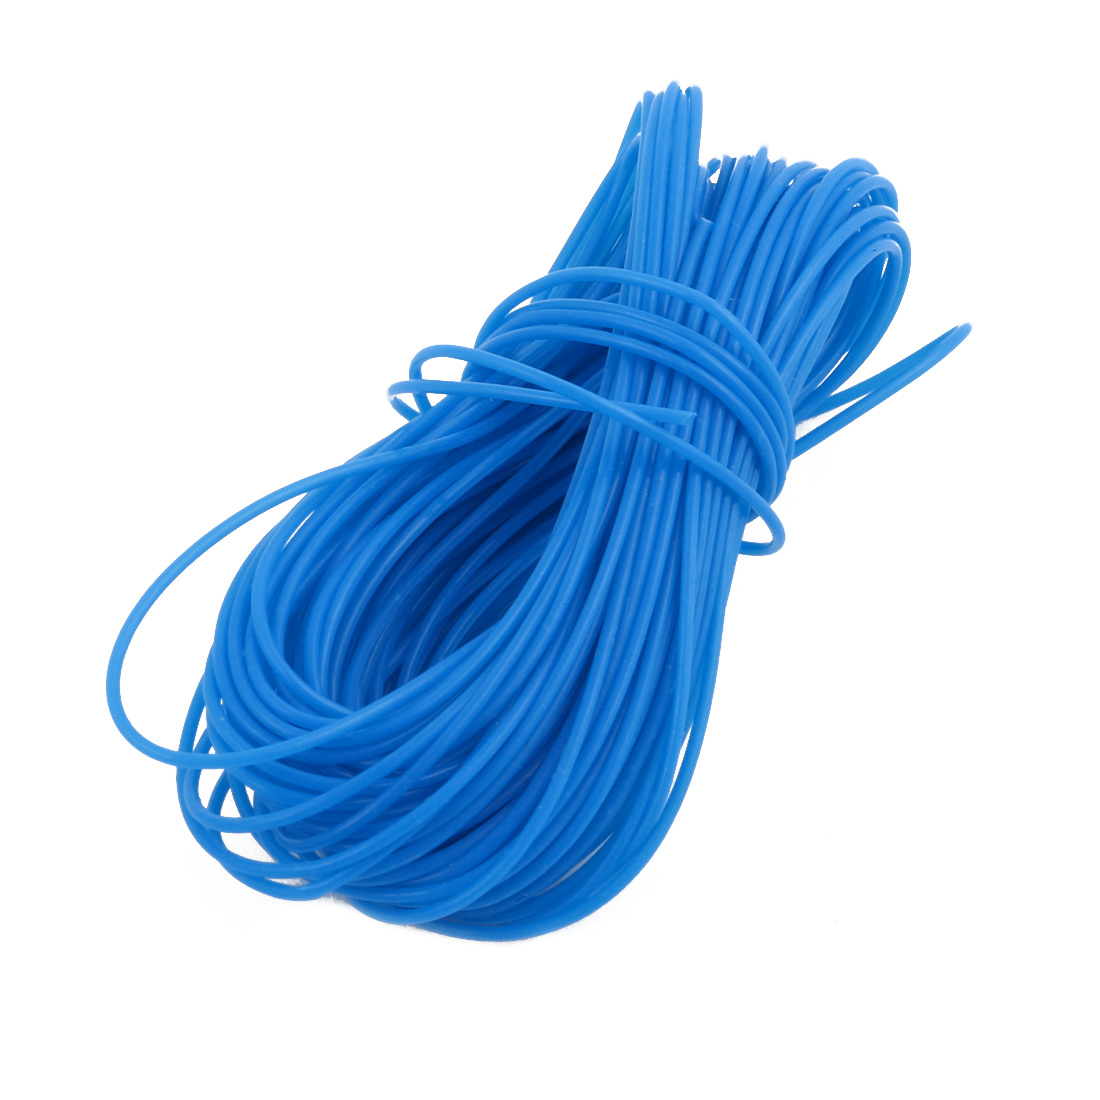 0.81mmx1.11mm PTFE Resistant High Temperature Blue Tubing 10 Meters 32.8Ft